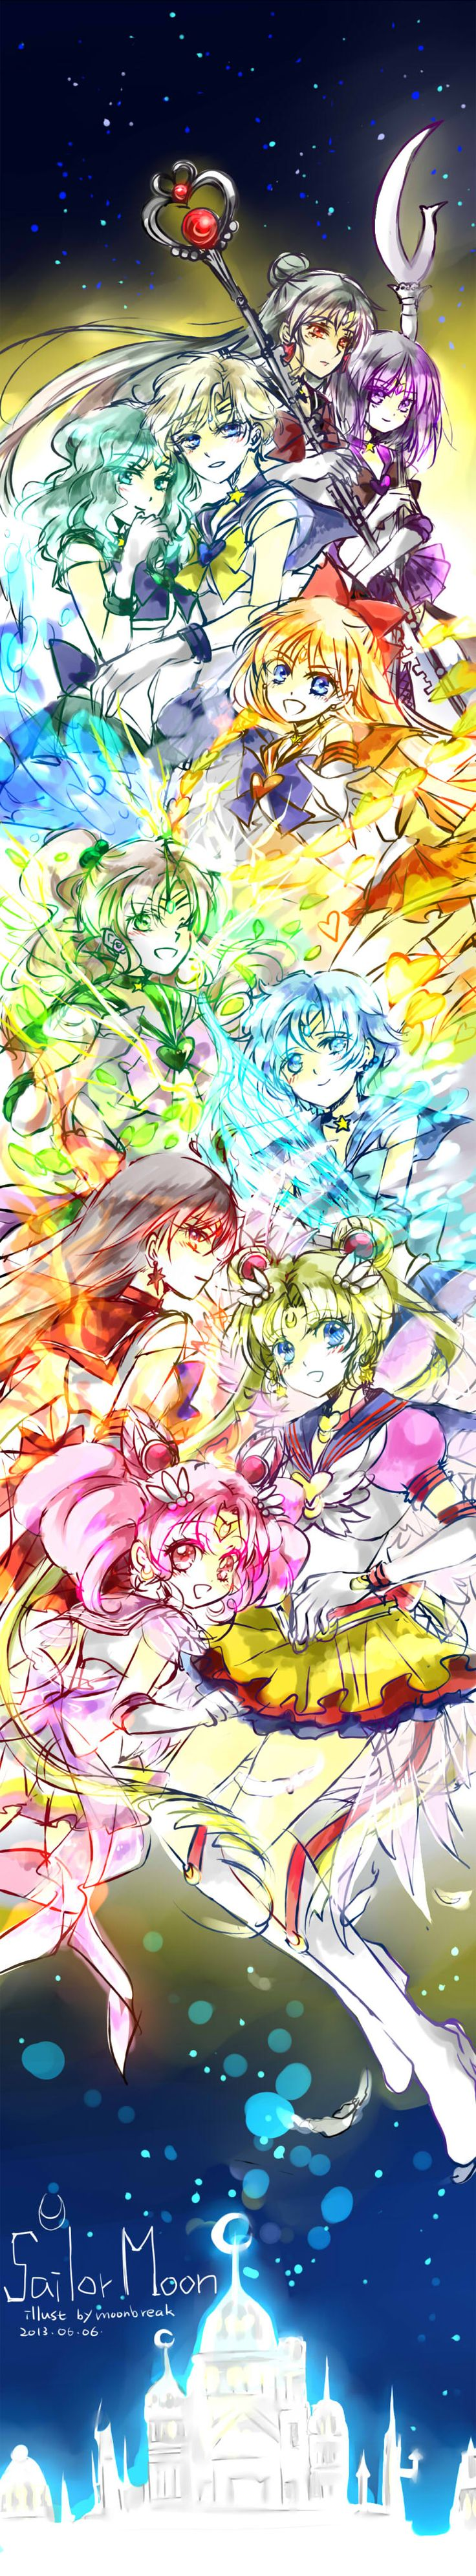 Sailor Senshi                                                                                                                                                                                 More